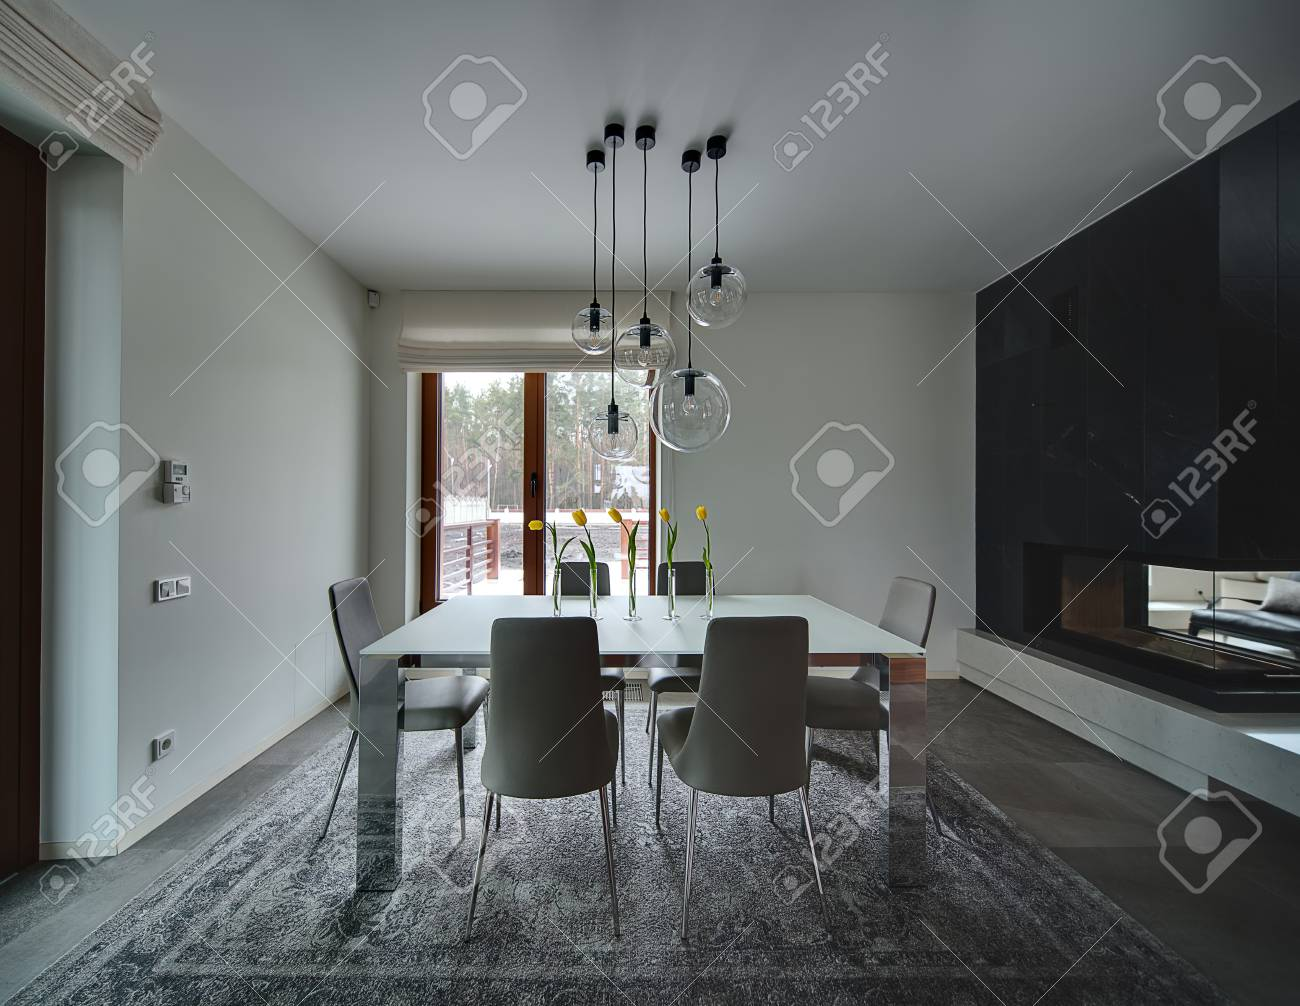 Room With Light Walls On The Floor There Are Gray Tiles And Stock Photo Picture And Royalty Free Image Image 54432936